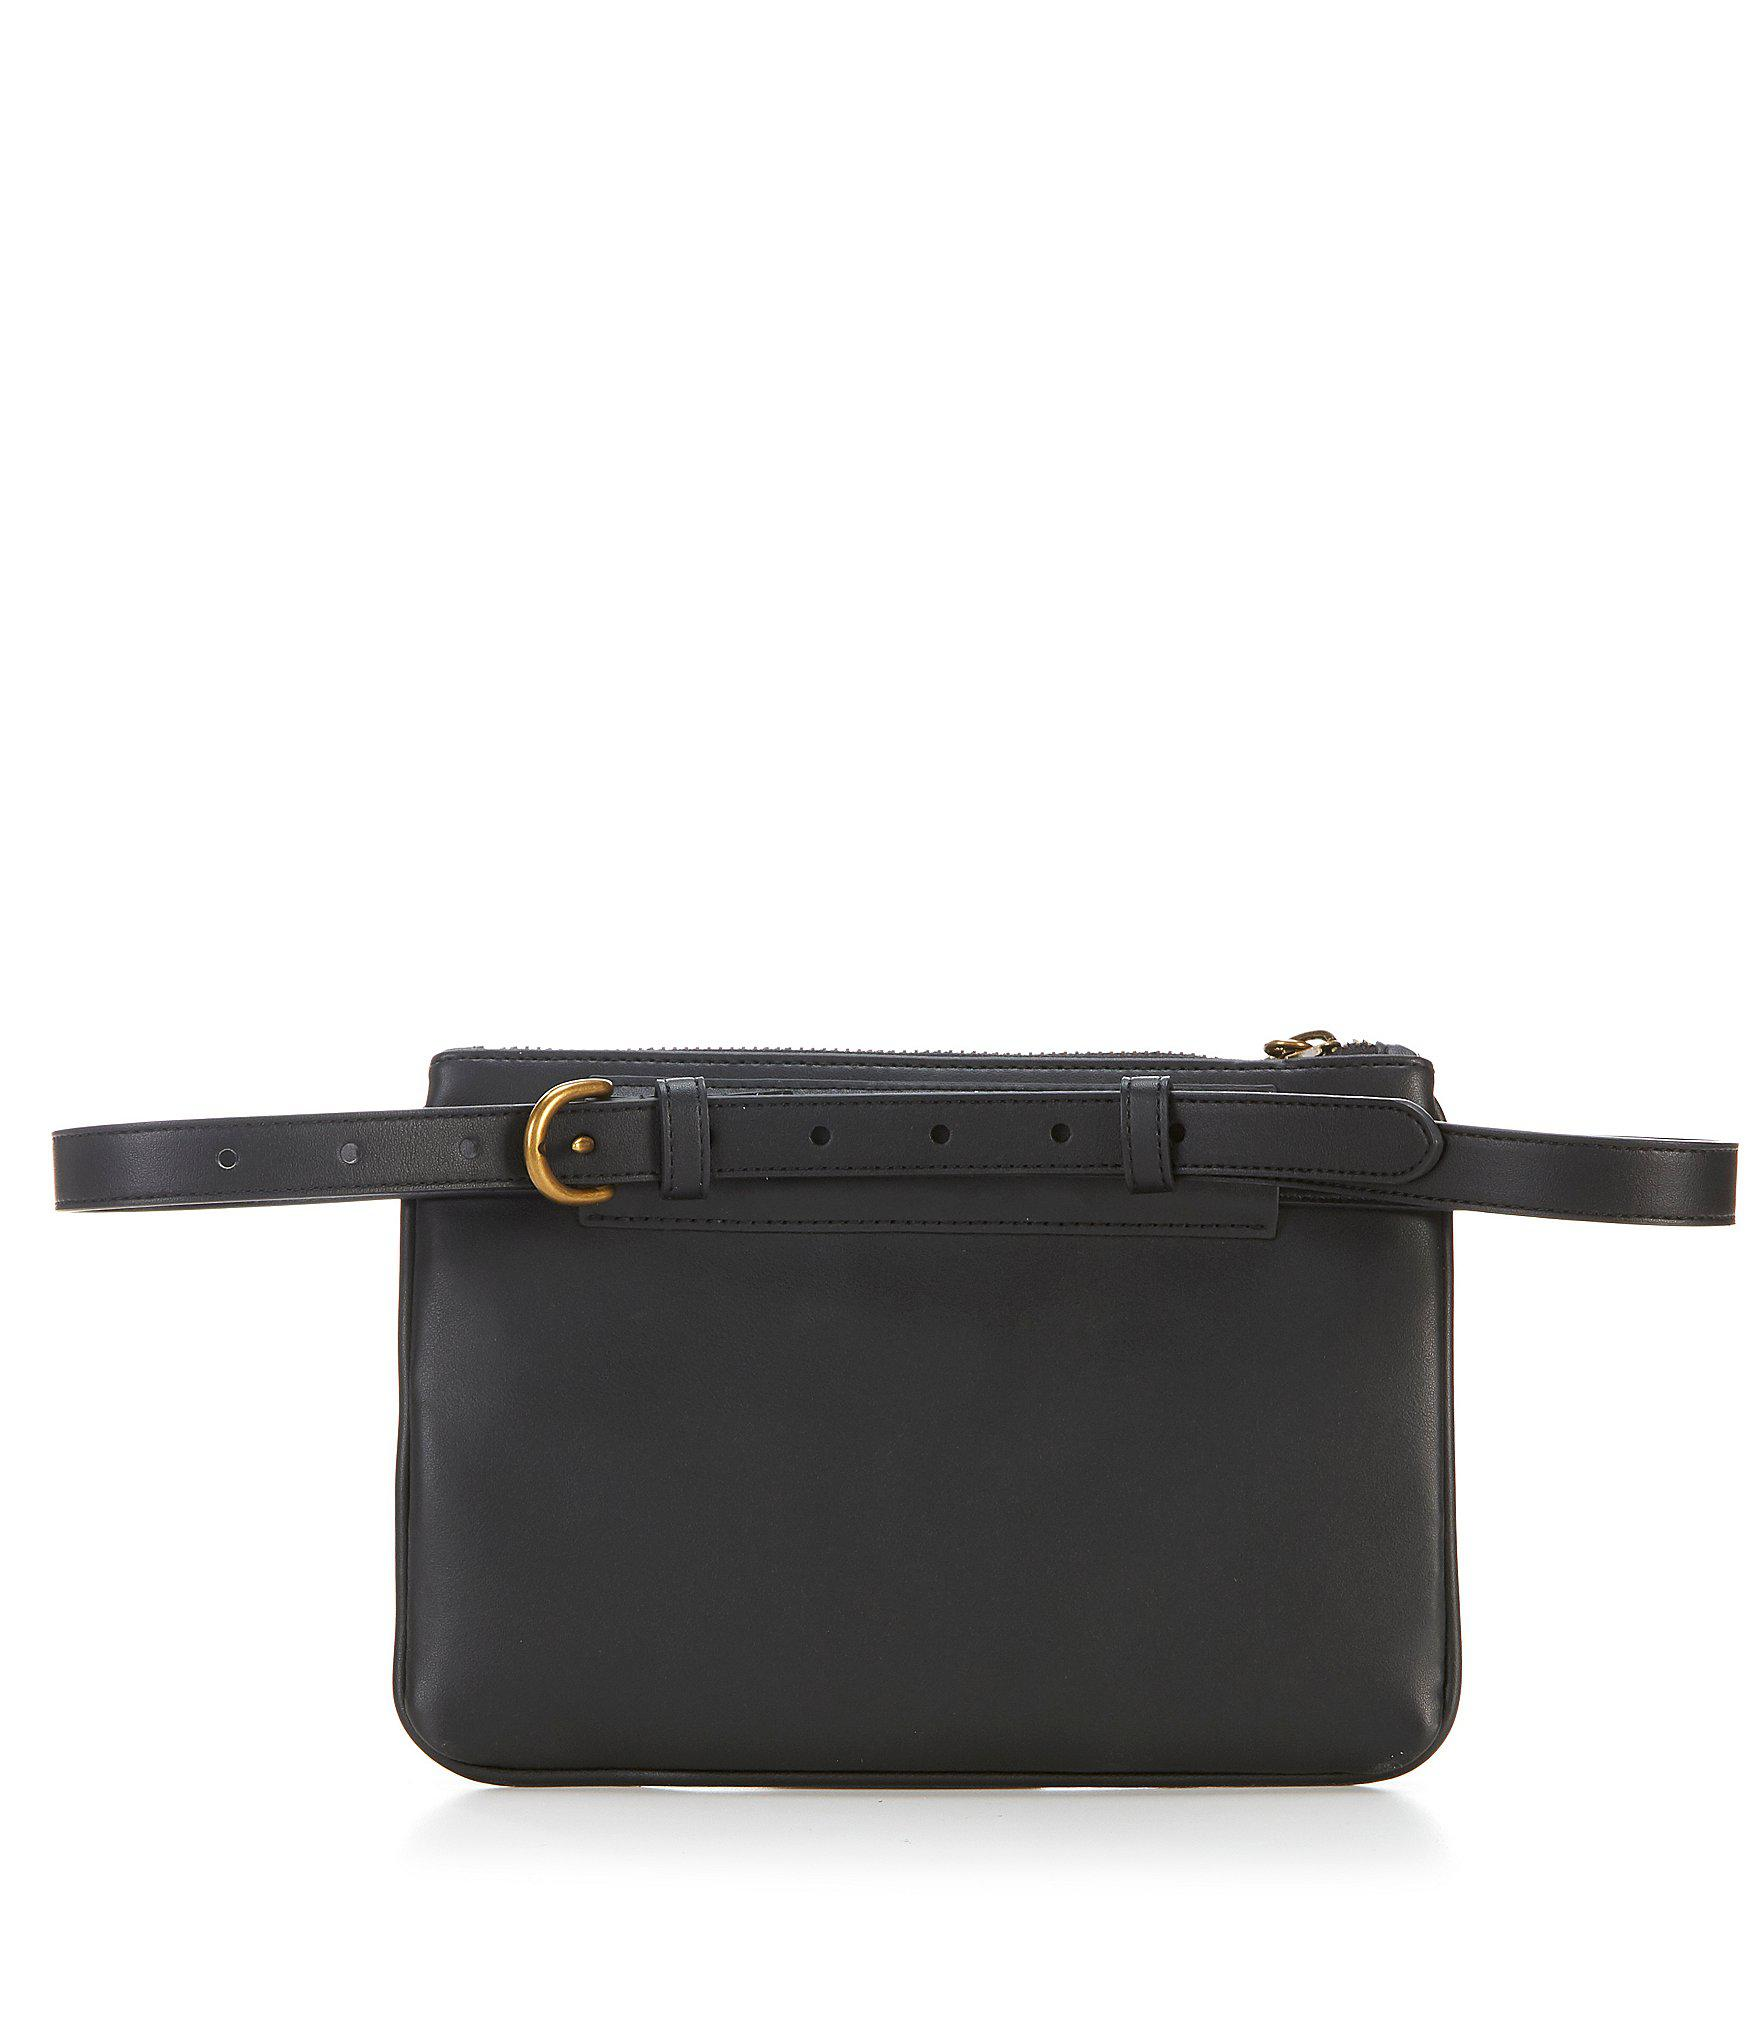 399a88470f Lauren by Ralph Lauren - Black Quilted Belt Bag - Lyst. View fullscreen